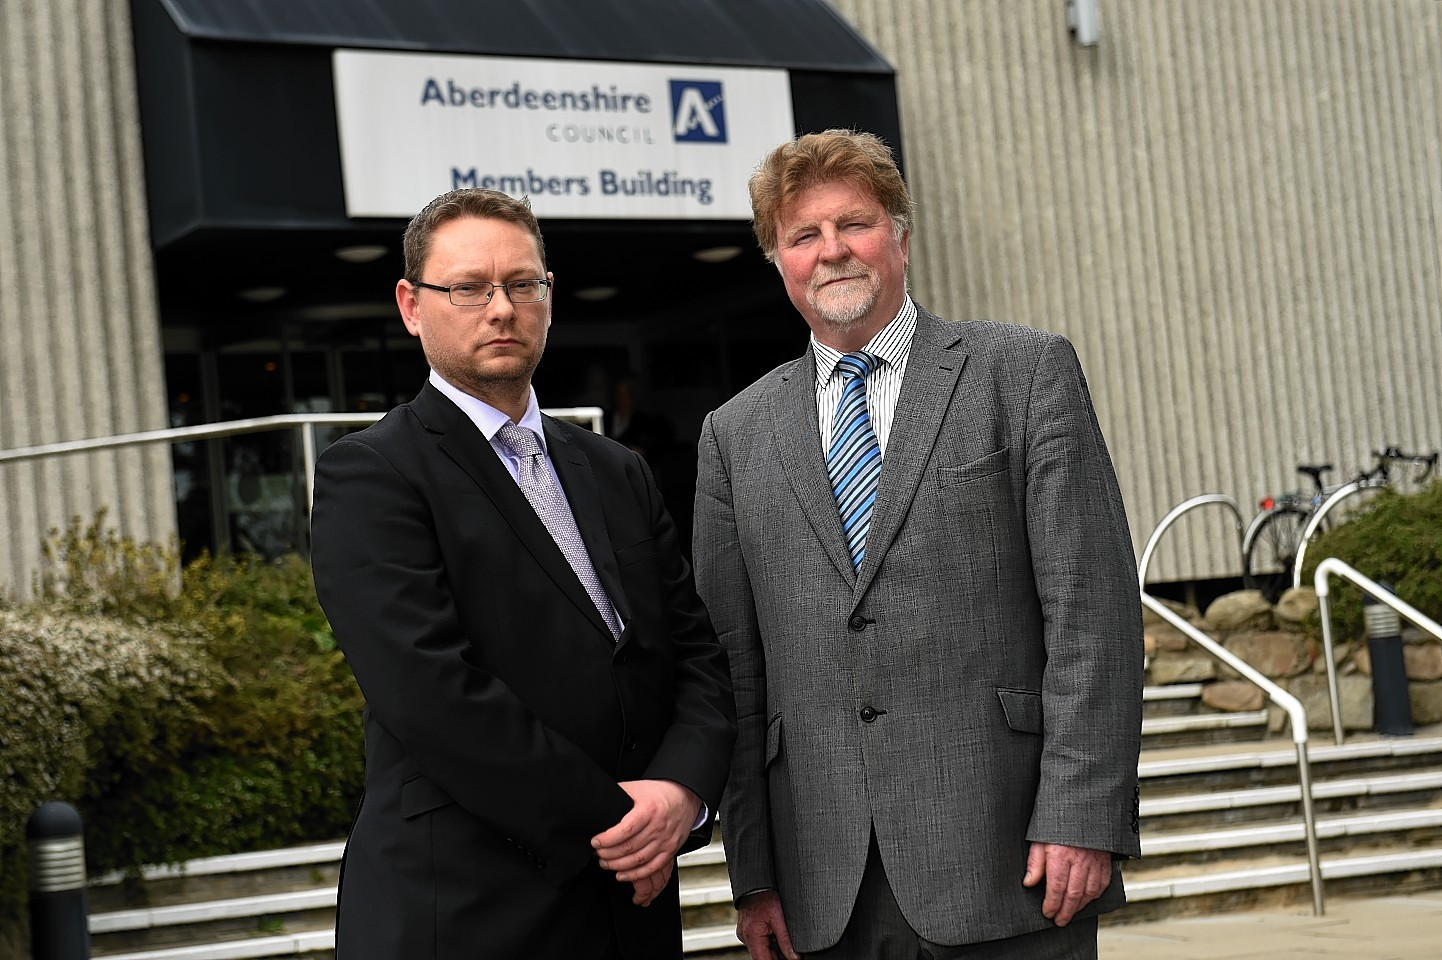 Aberdeenshire Council's co-leaders Richard Thomson and Martin Kitts-Hayes